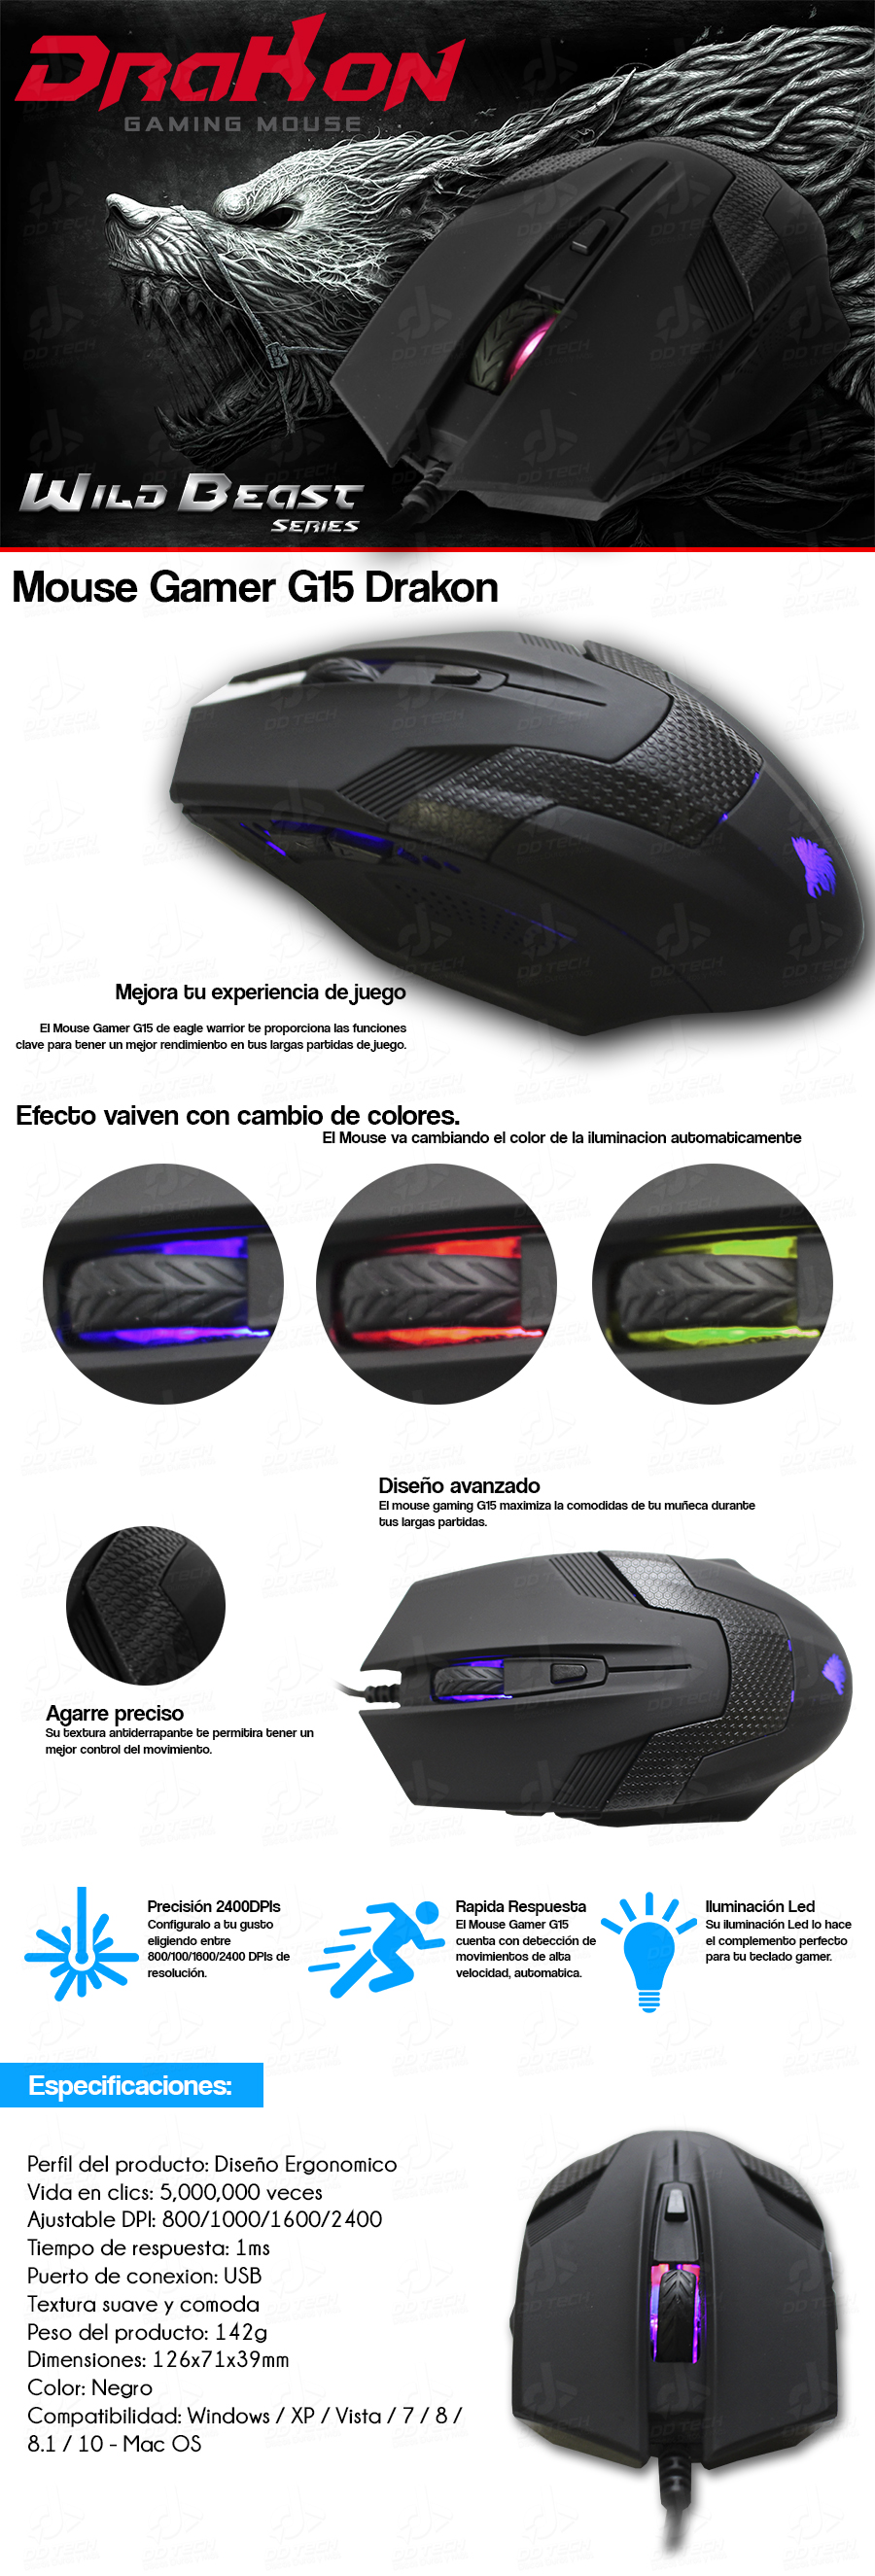 Mouse / Raton Gamer Eagle Warrior Drakon G15 Retroiluminado | DD Tech